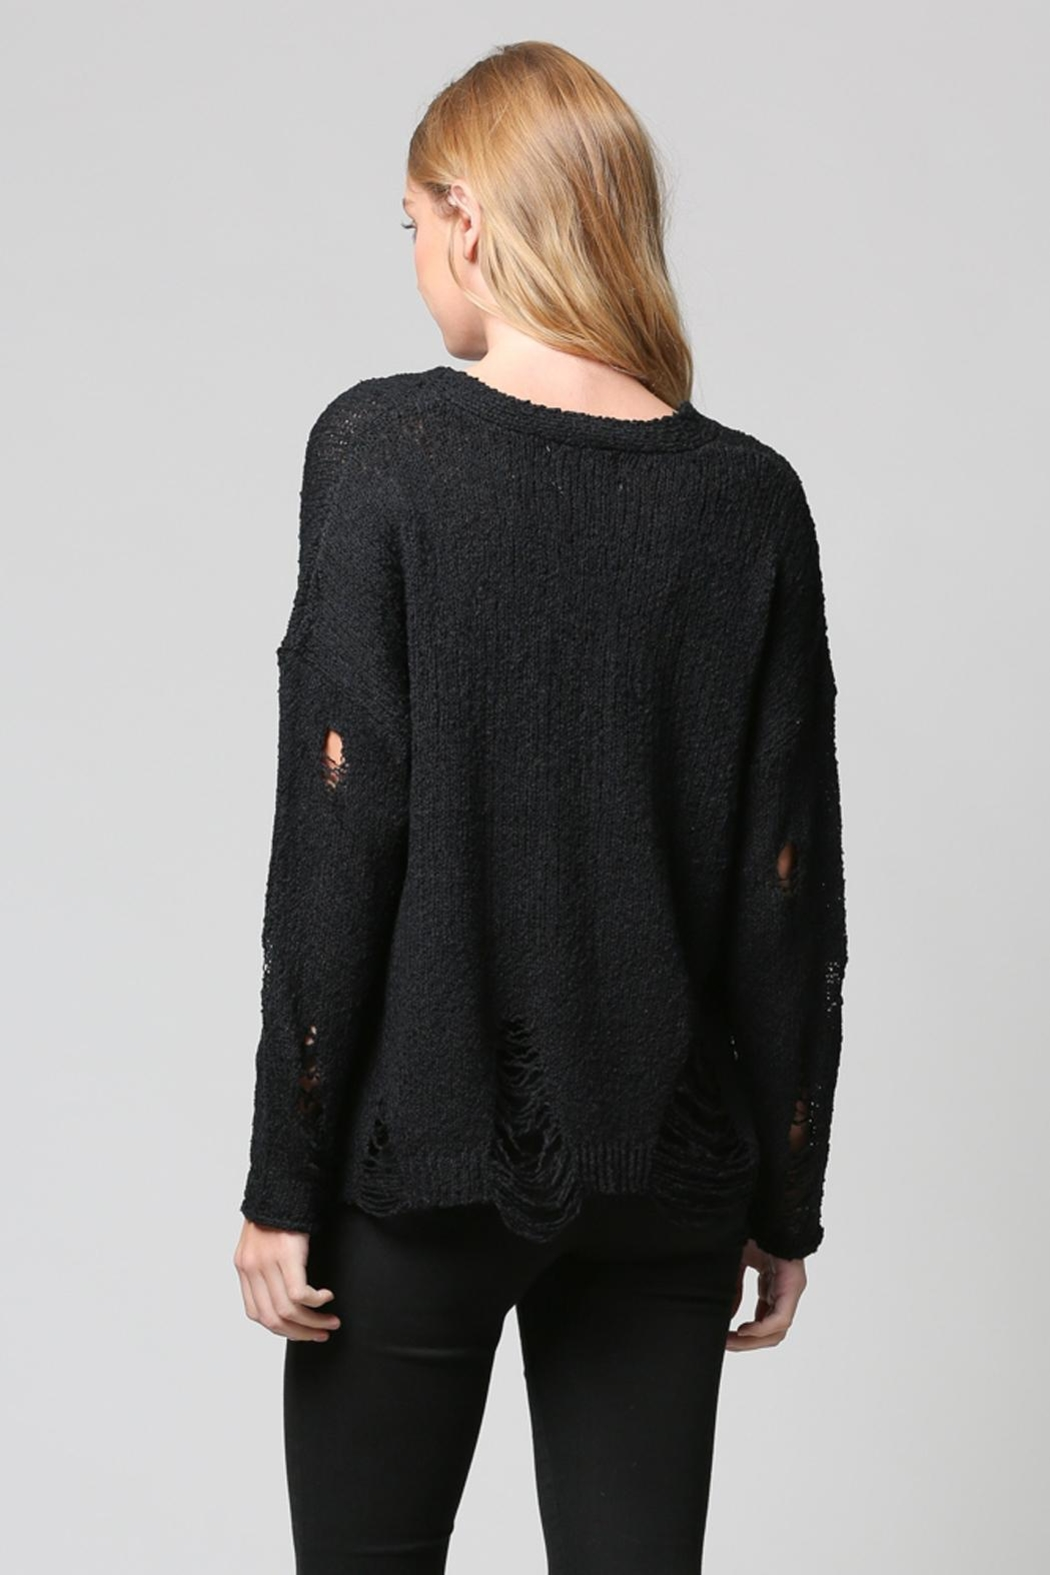 FATE by LFD Distressed Sweater - Side Cropped Image